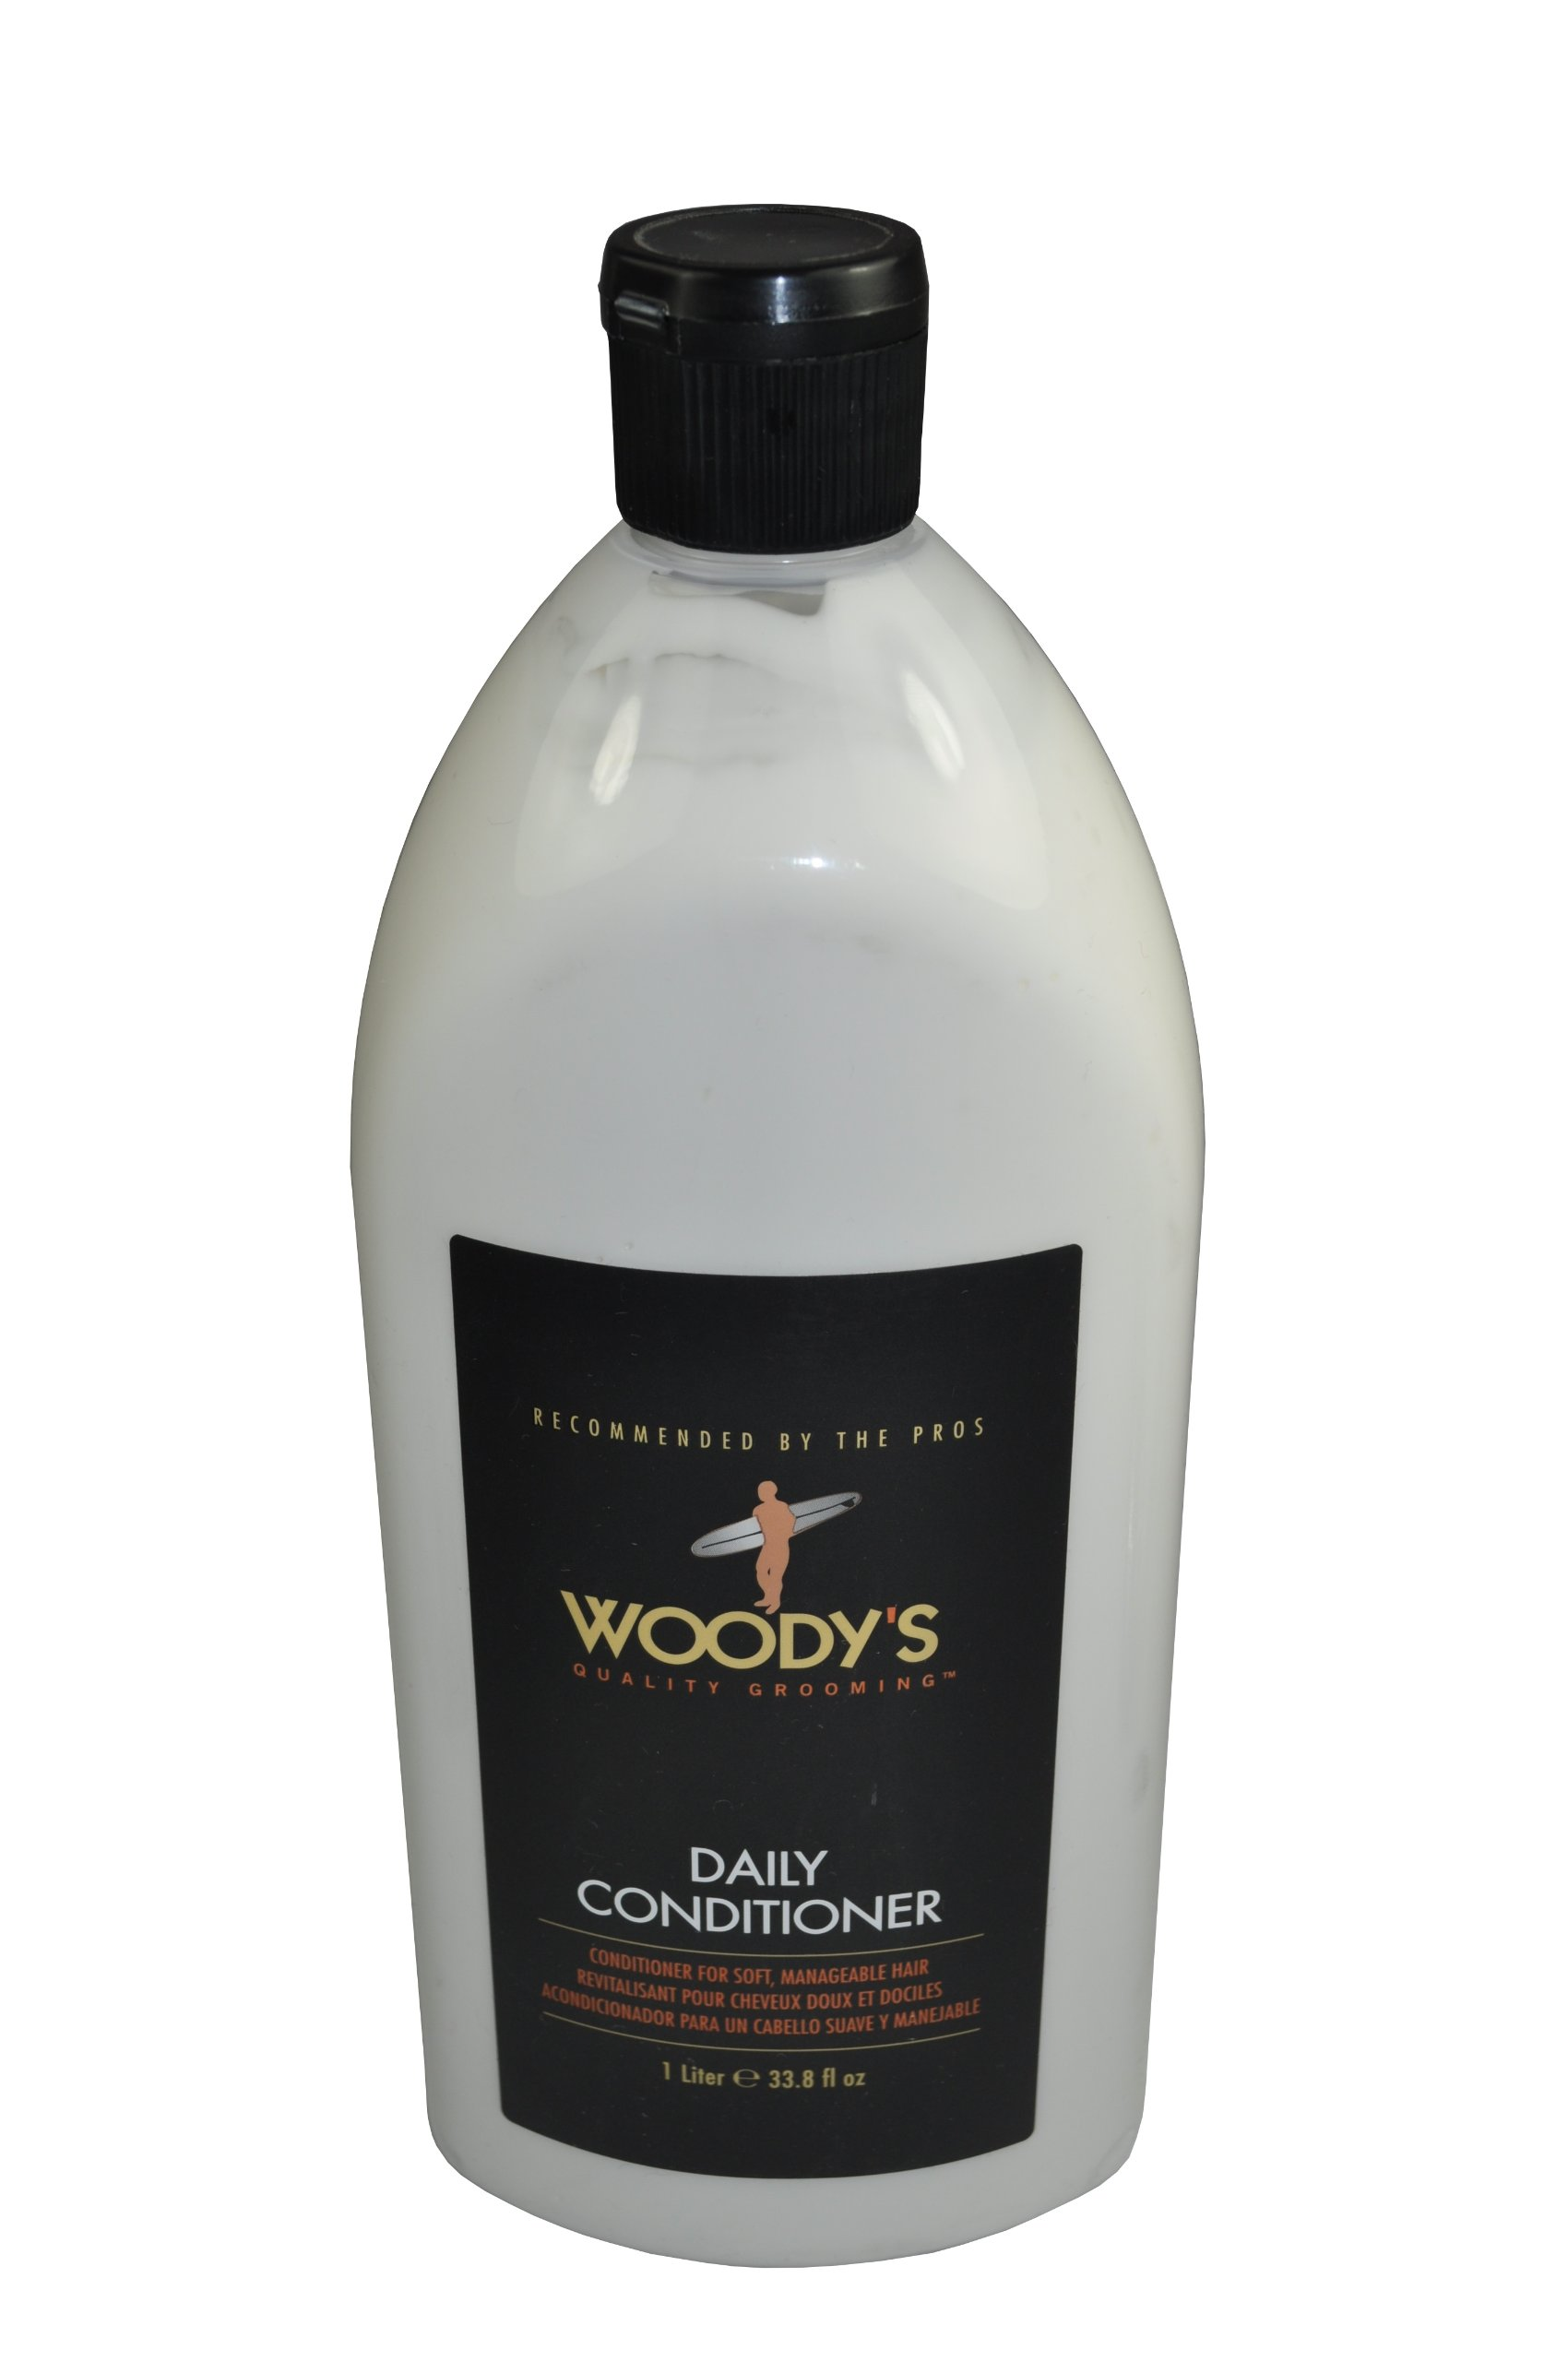 Woody's Daily Conditioner for Men, 33.8 Ounce